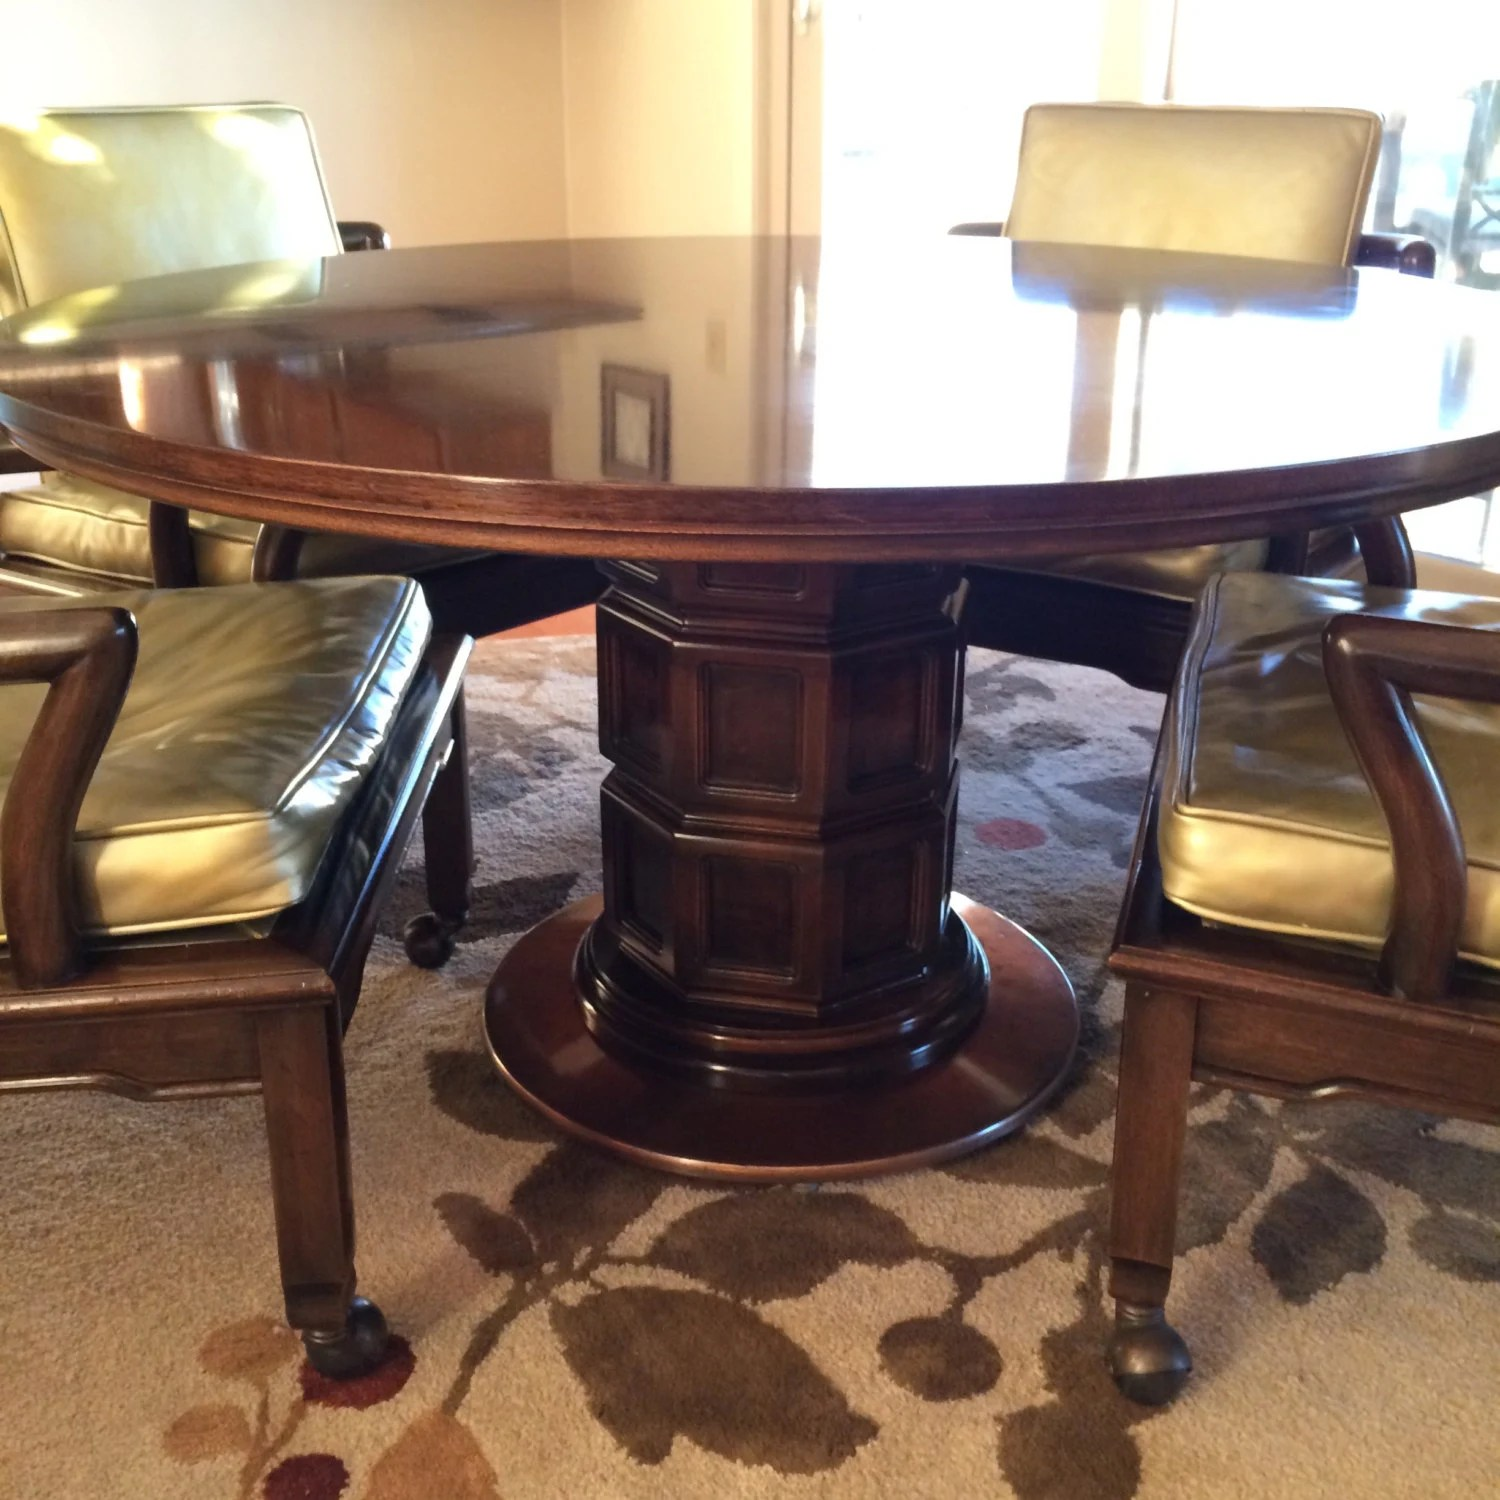 club chairs and table leather of bath ibsen widdicomb copper pedestal 4